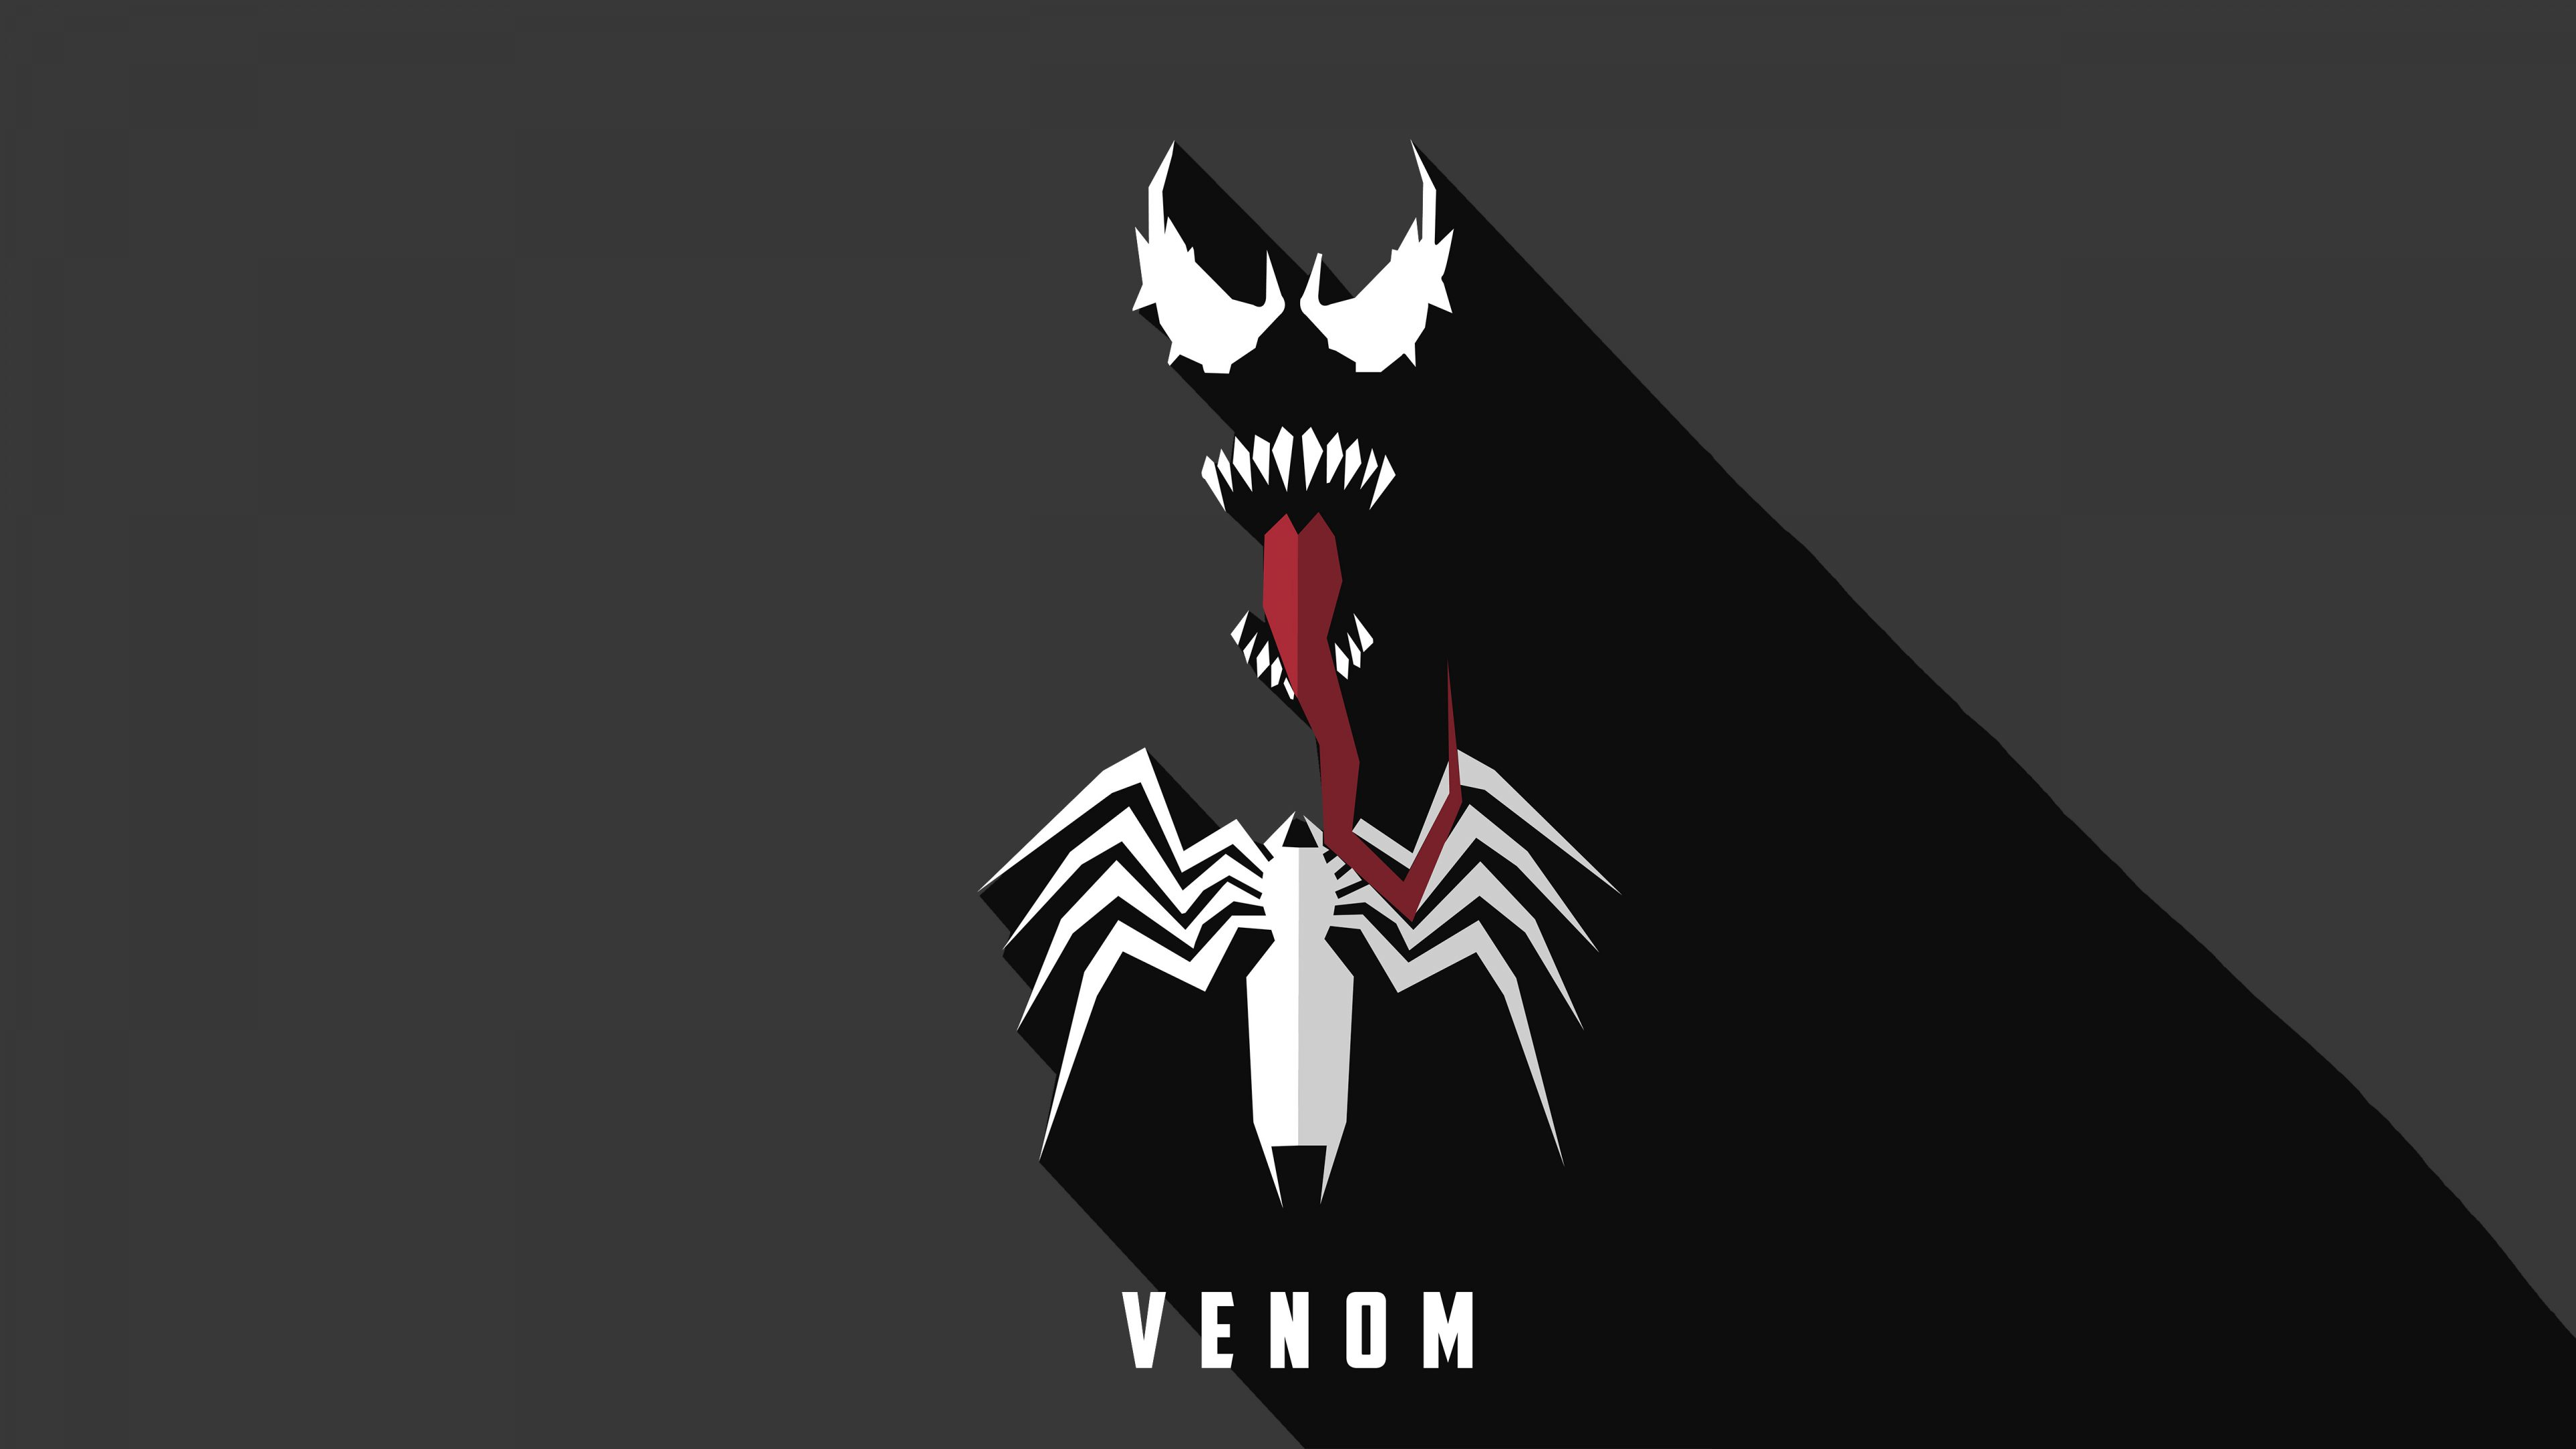 Venom Artwork 5k Wallpaper  Best Wallpapers